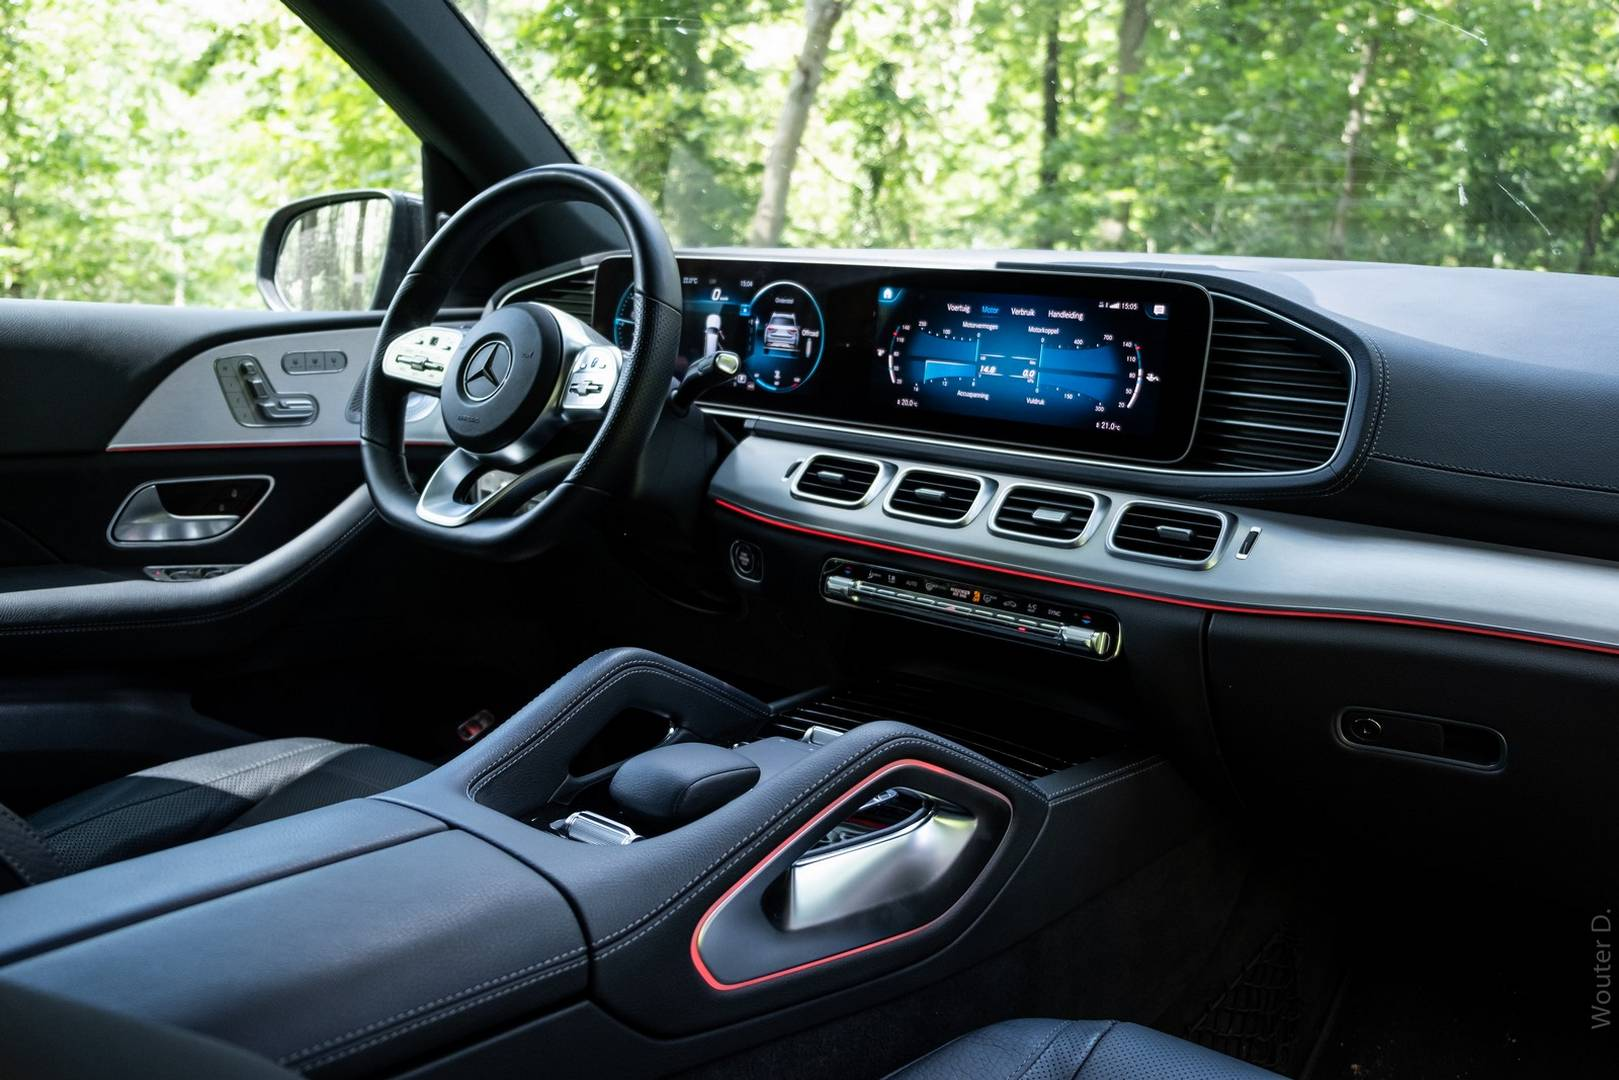 Mercedes-Benz GLS 400d Interior